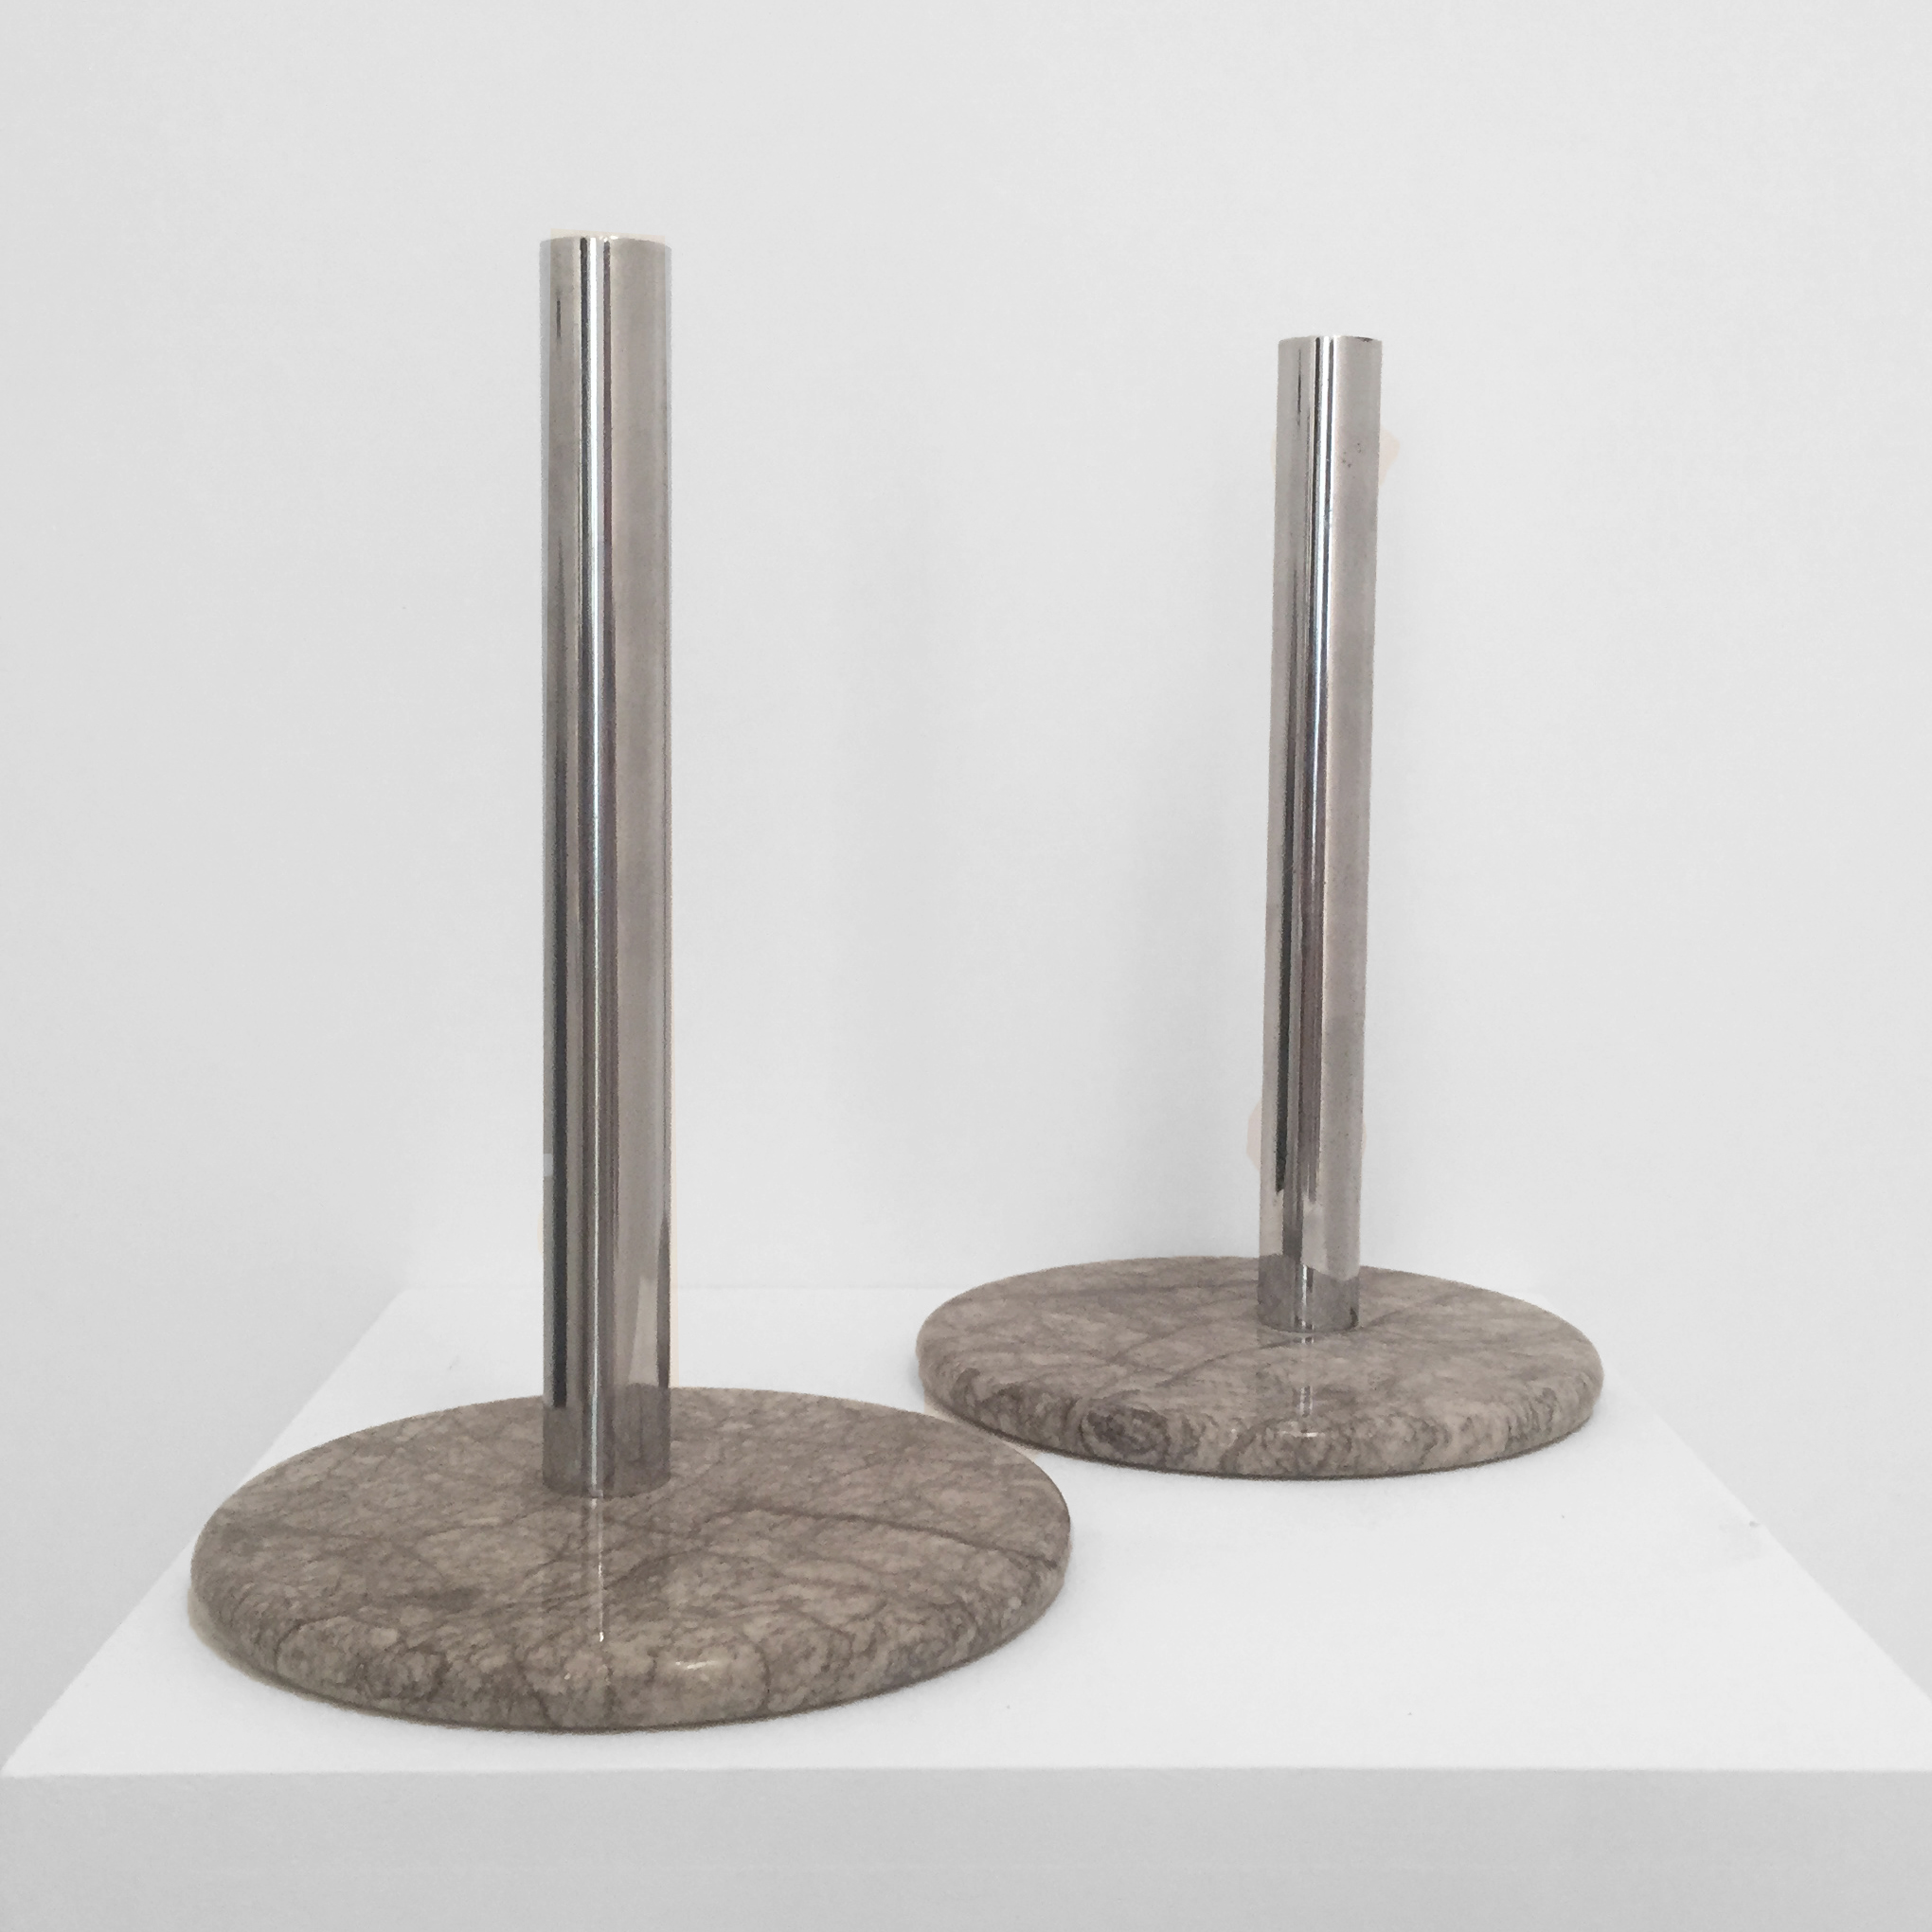 angelo mangiarotti 'bud' vases for knoll $2,000 for pair / $1,250 each